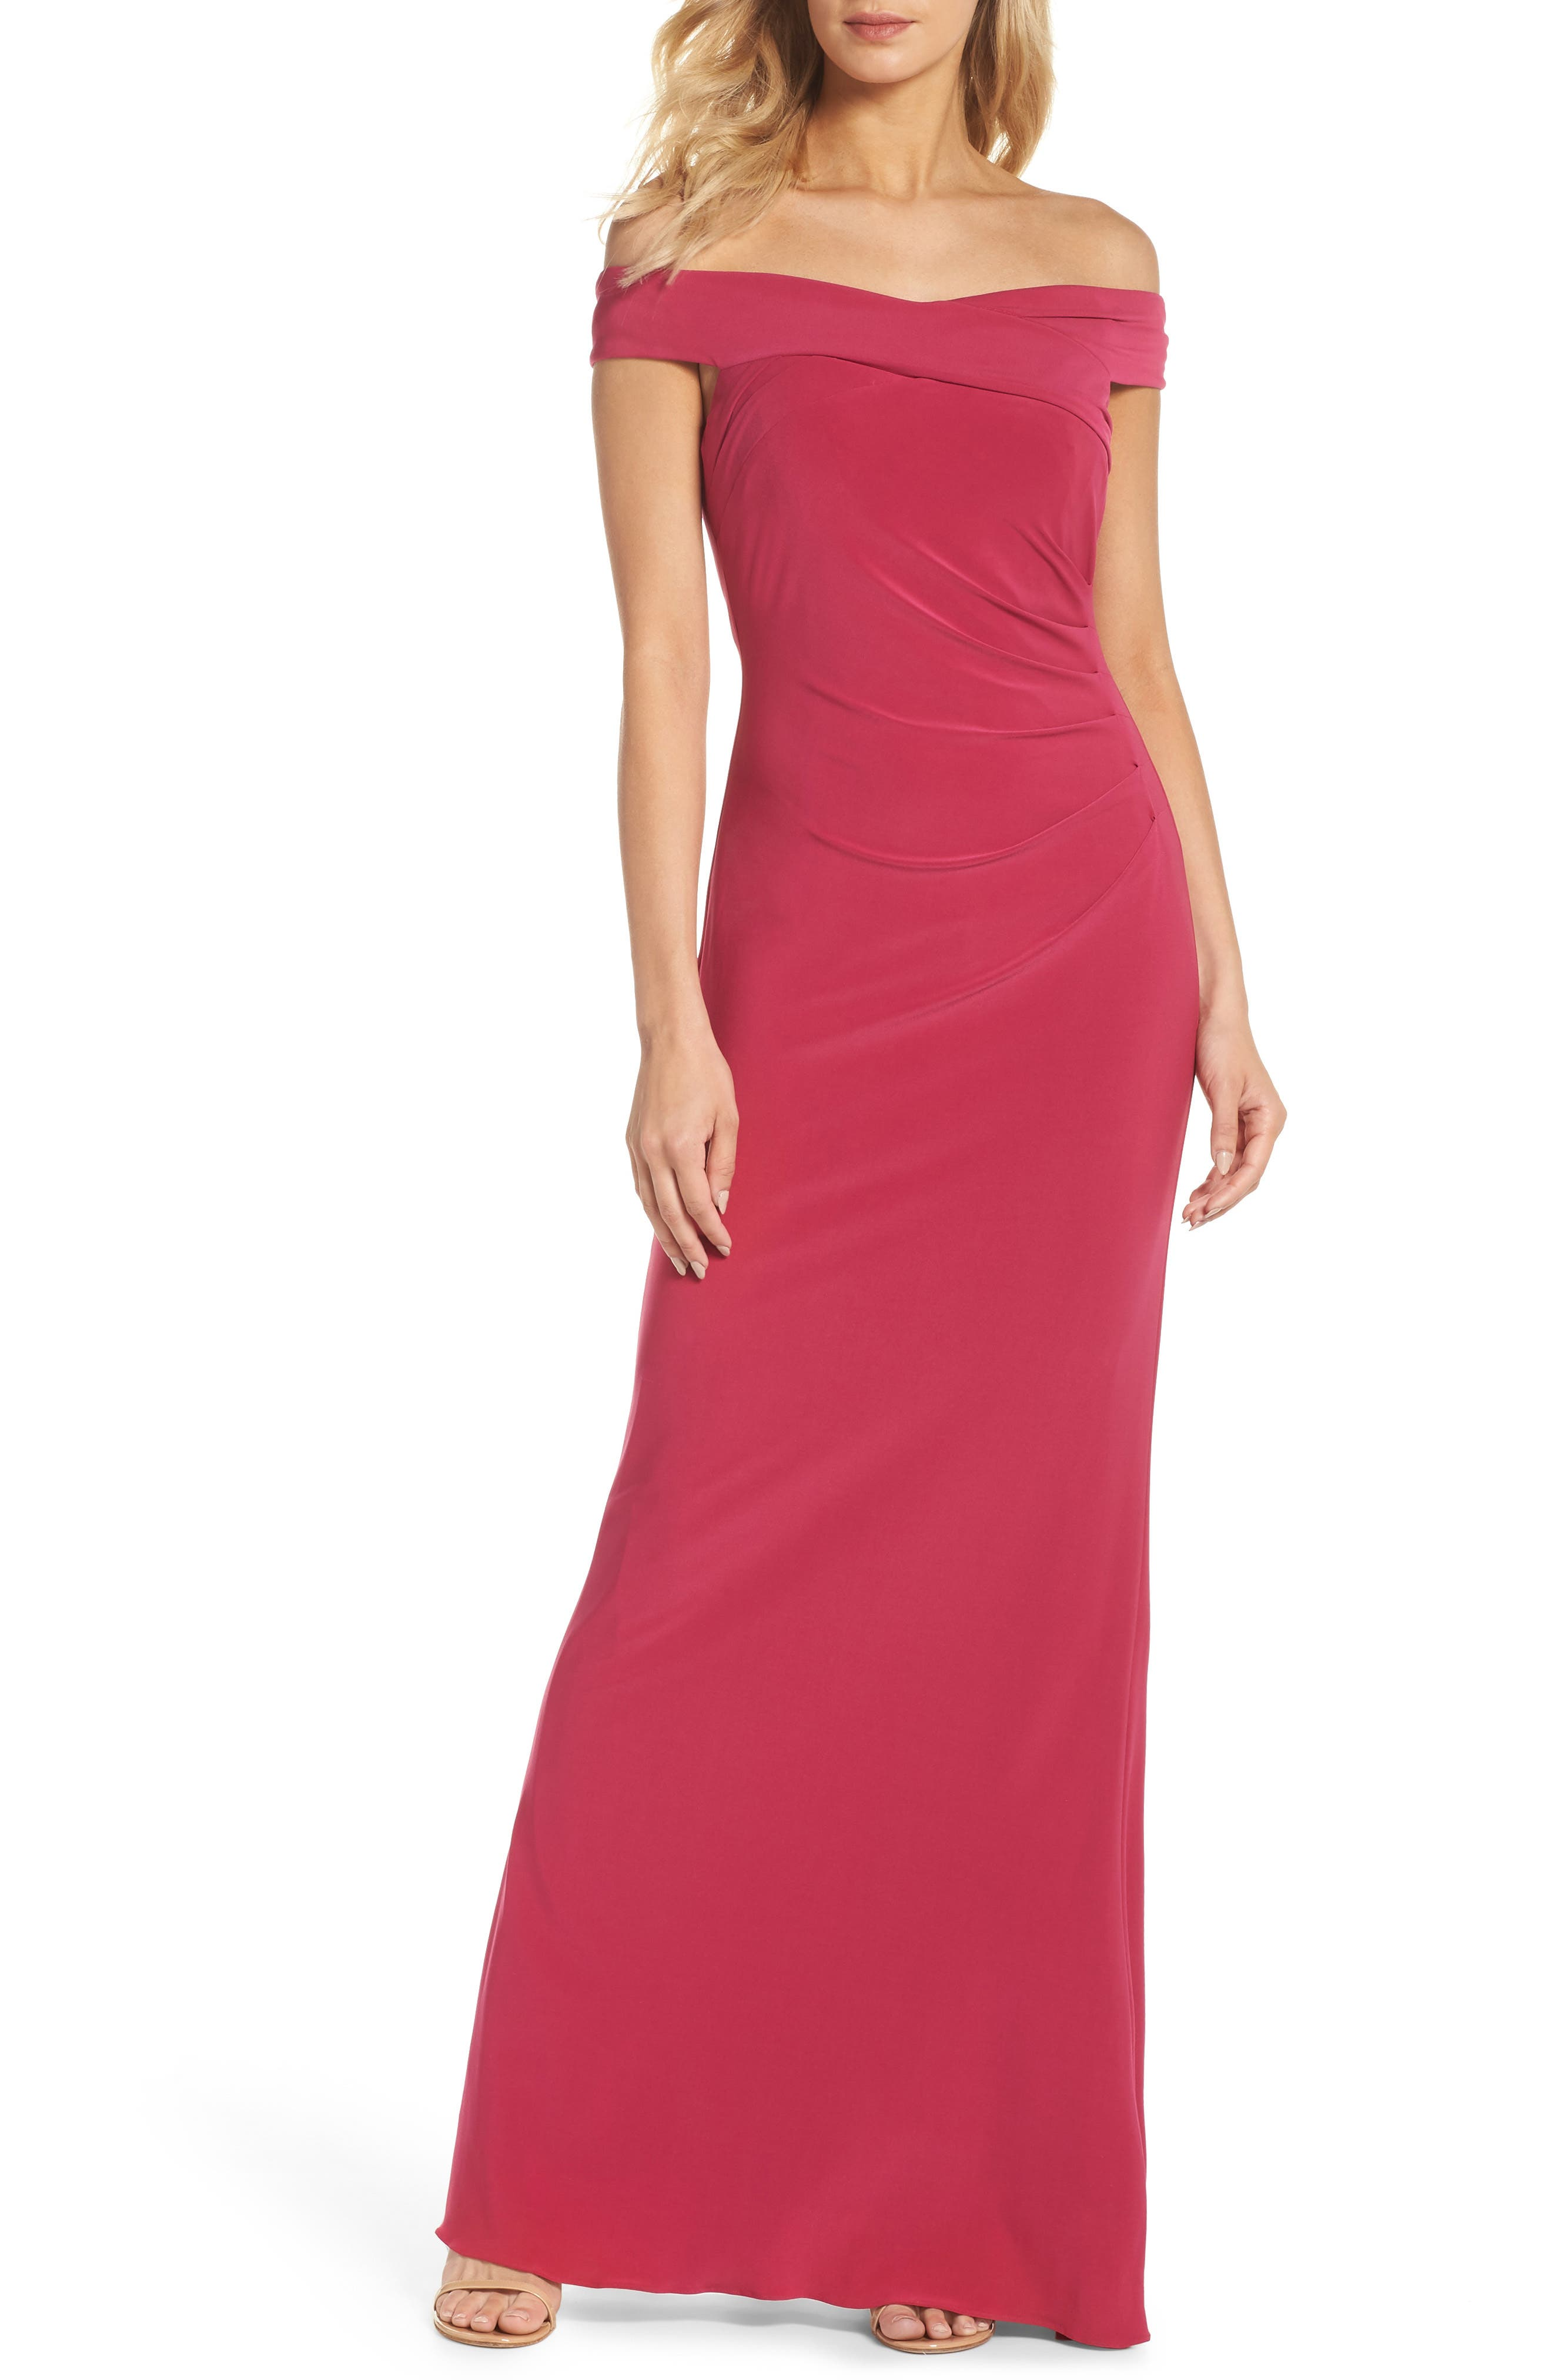 Adrianna Papell Off the Shoulder Jersey Gown (Regular & Petite)